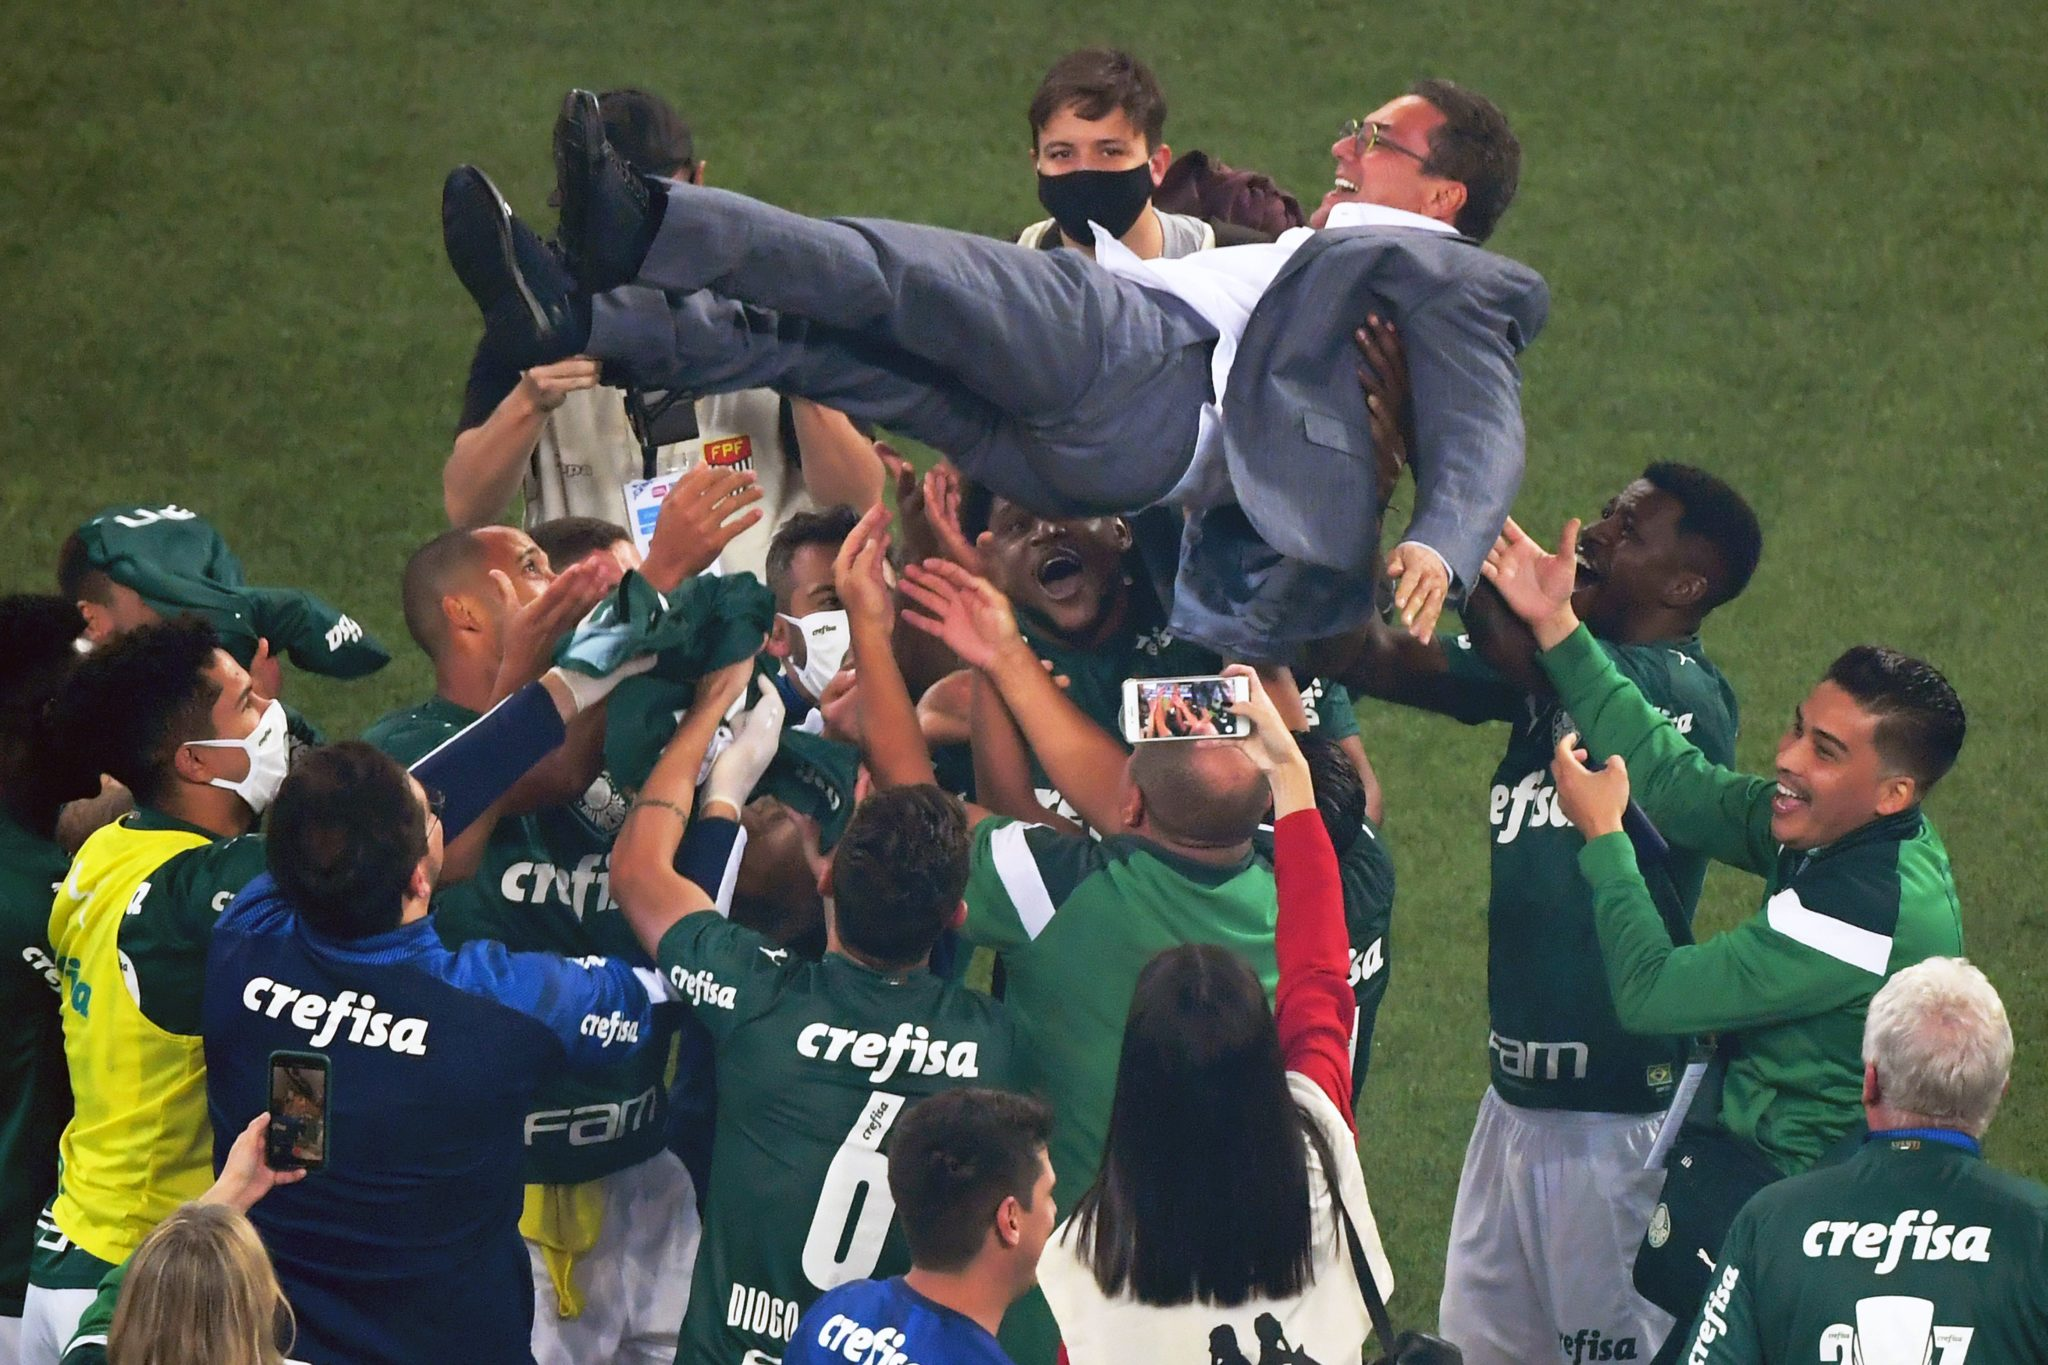 Players of Palmeiras throw coach Vanderlei Luxemburgo in the air after winning the Paulista championship final football match against Corinthians at the Allianz Parque stadium, in Sao Paulo, Brazil, on August 8, 2020, amid the COVID-19 novel coronavirus pandemic. (Photo by Nelson ALMEIDA / AFP) (Photo by NELSON ALMEIDA/AFP via Getty Images)